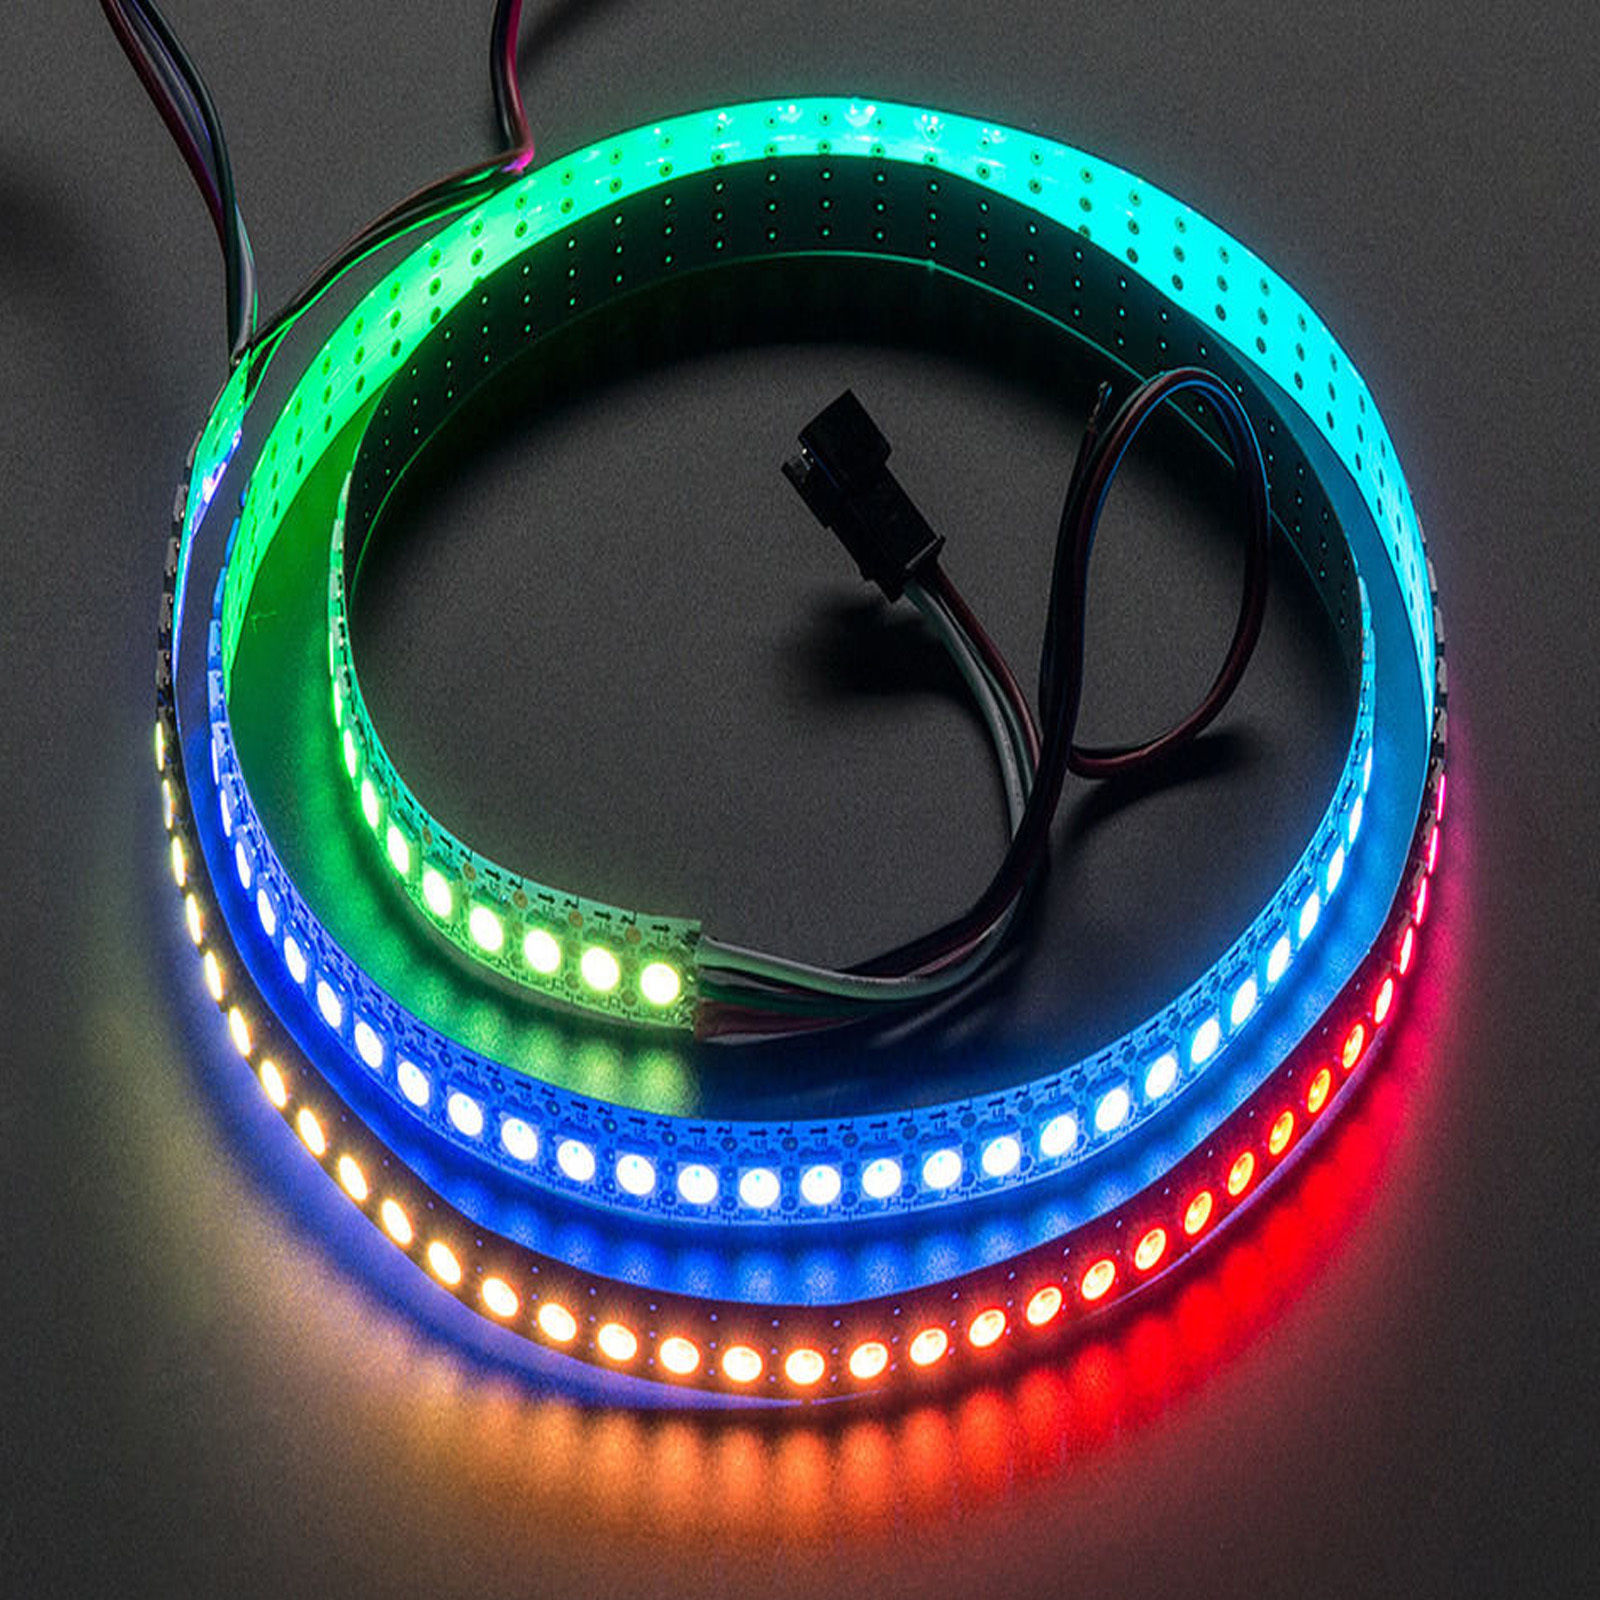 WS2812B-5050-RGB-LED-Strip-5M-150-300-Leds-144-60LED-M-Individual-Addressable-5V Fabelhafte Led Band 5m Farbwechsel Dekorationen